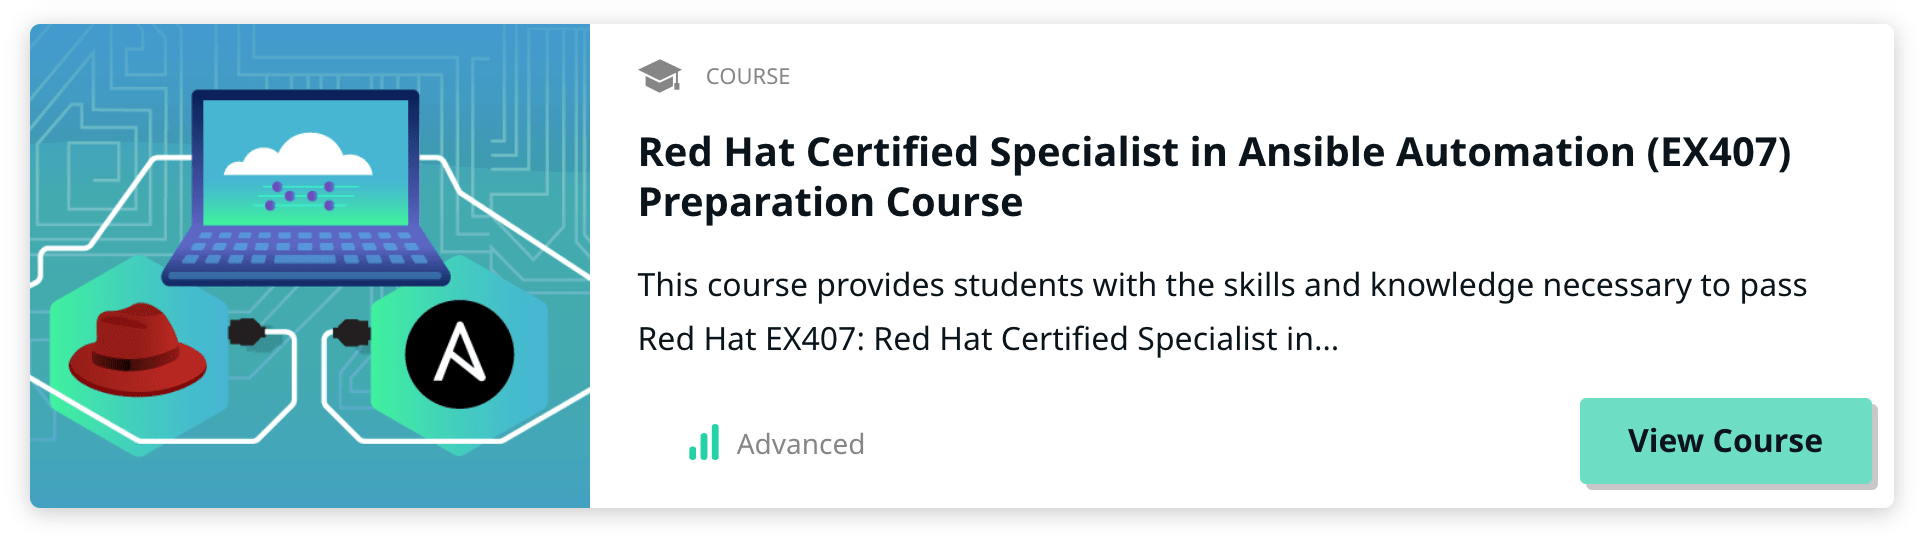 Red Hat Certified Specialist in Ansible course on Linux Academy